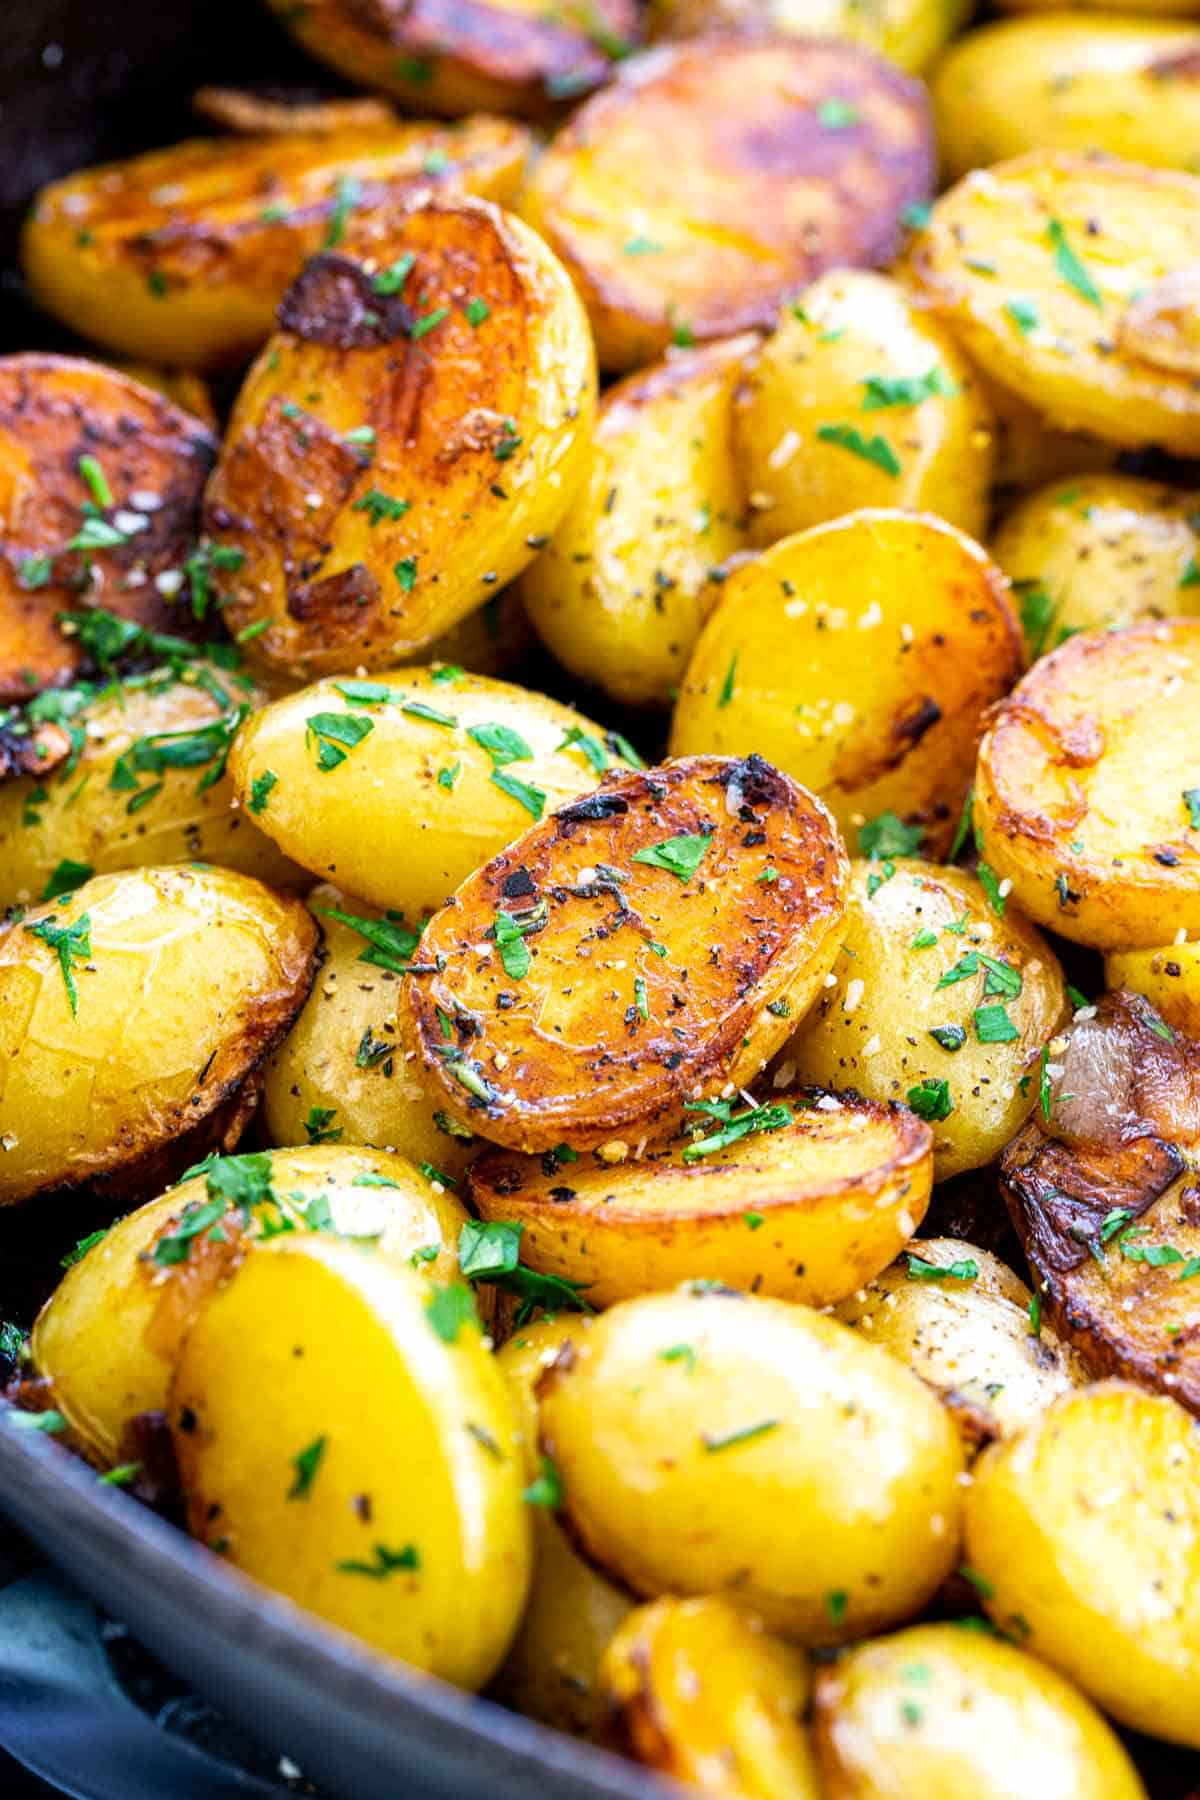 Easy skillet potatoes seasoned with herbs and garlic for a delicious one-pan side dish. Creamy Yukon Gold potatoes are used for better texture and flavor. #skilletpotatoes #sidedish #potatoes